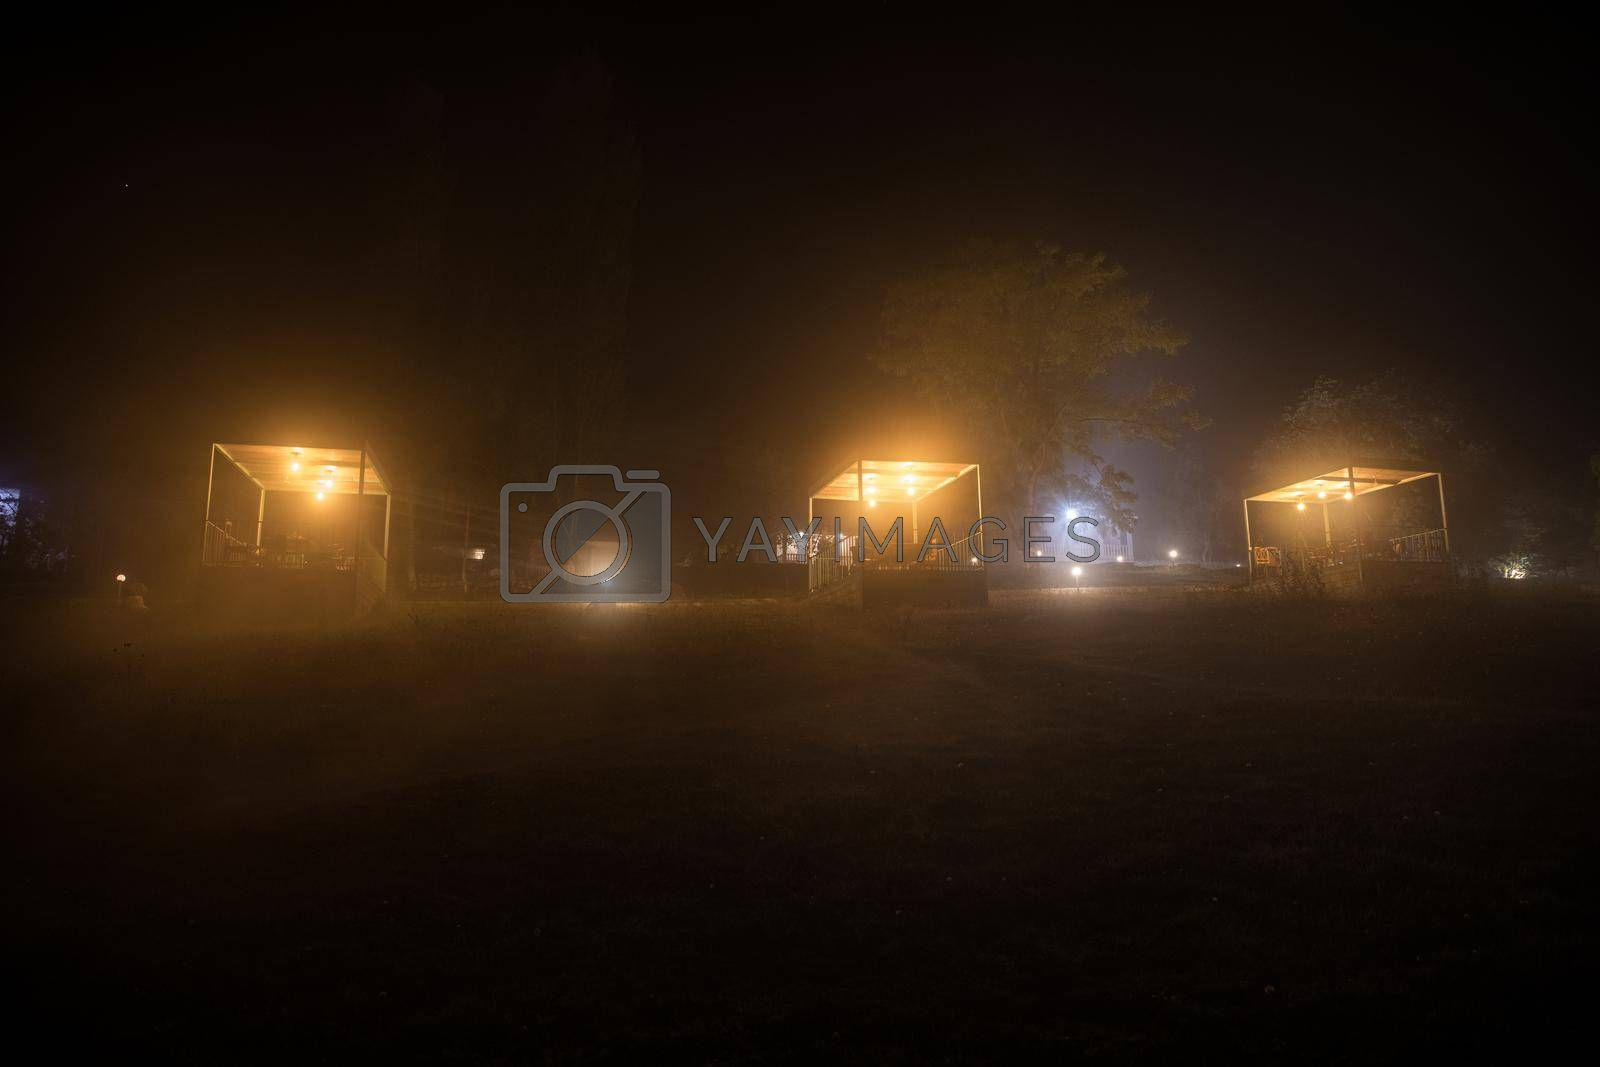 Gazebo with lights/gazebo at night/a gazebo lit up at night or Trees and street lamps on a quiet foggy night. Foggy misty evening lamps in empty road at forest.